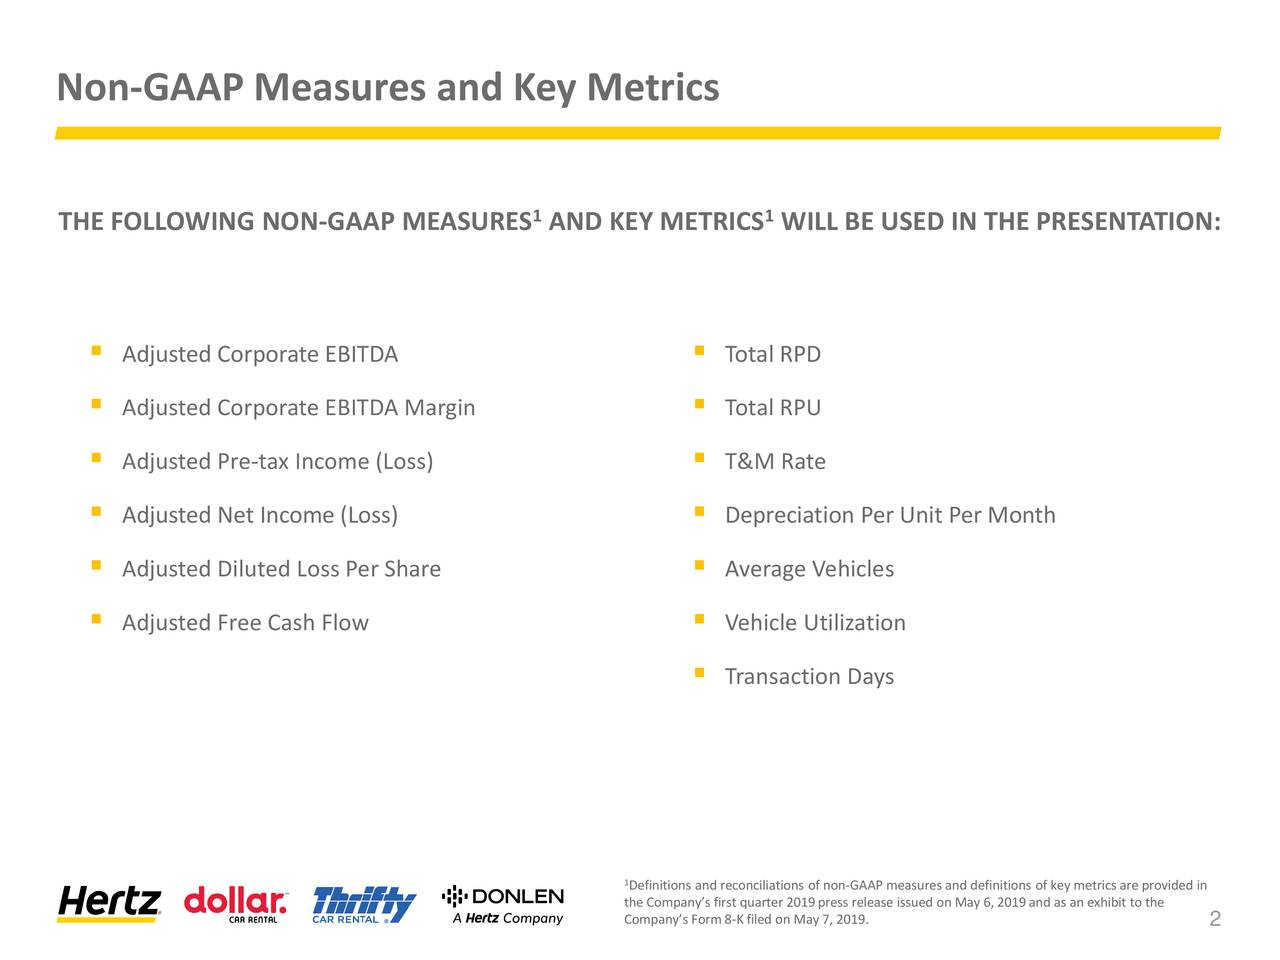 THE FOLLOWING NON-GAAP MEASURES AND KEY METRICS WILL BE USED IN THE PRESENTATION: ▪ Adjusted Corporate EBITDA ▪ Total RPD ▪ Adjusted Corporate EBITDA Margin ▪ Total RPU ▪ Adjusted Pre-tax Income (Loss) ▪ T&M Rate ▪ Adjusted Net Income (Loss) ▪ Depreciation Per Unit Per Month ▪ Adjusted Diluted Loss Per Share ▪ Average Vehicles ▪ Adjusted Free Cash Flow ▪ Vehicle Utilization ▪ Transaction Days 1Definitions and reconciliations of non-GAAP measures and definitions of key metrics are provided in the Company's first quarter 2019press release issued on May 6, 2019and as an exhibit to the Company's Form8-Kfiled on May 7, 2019. 2